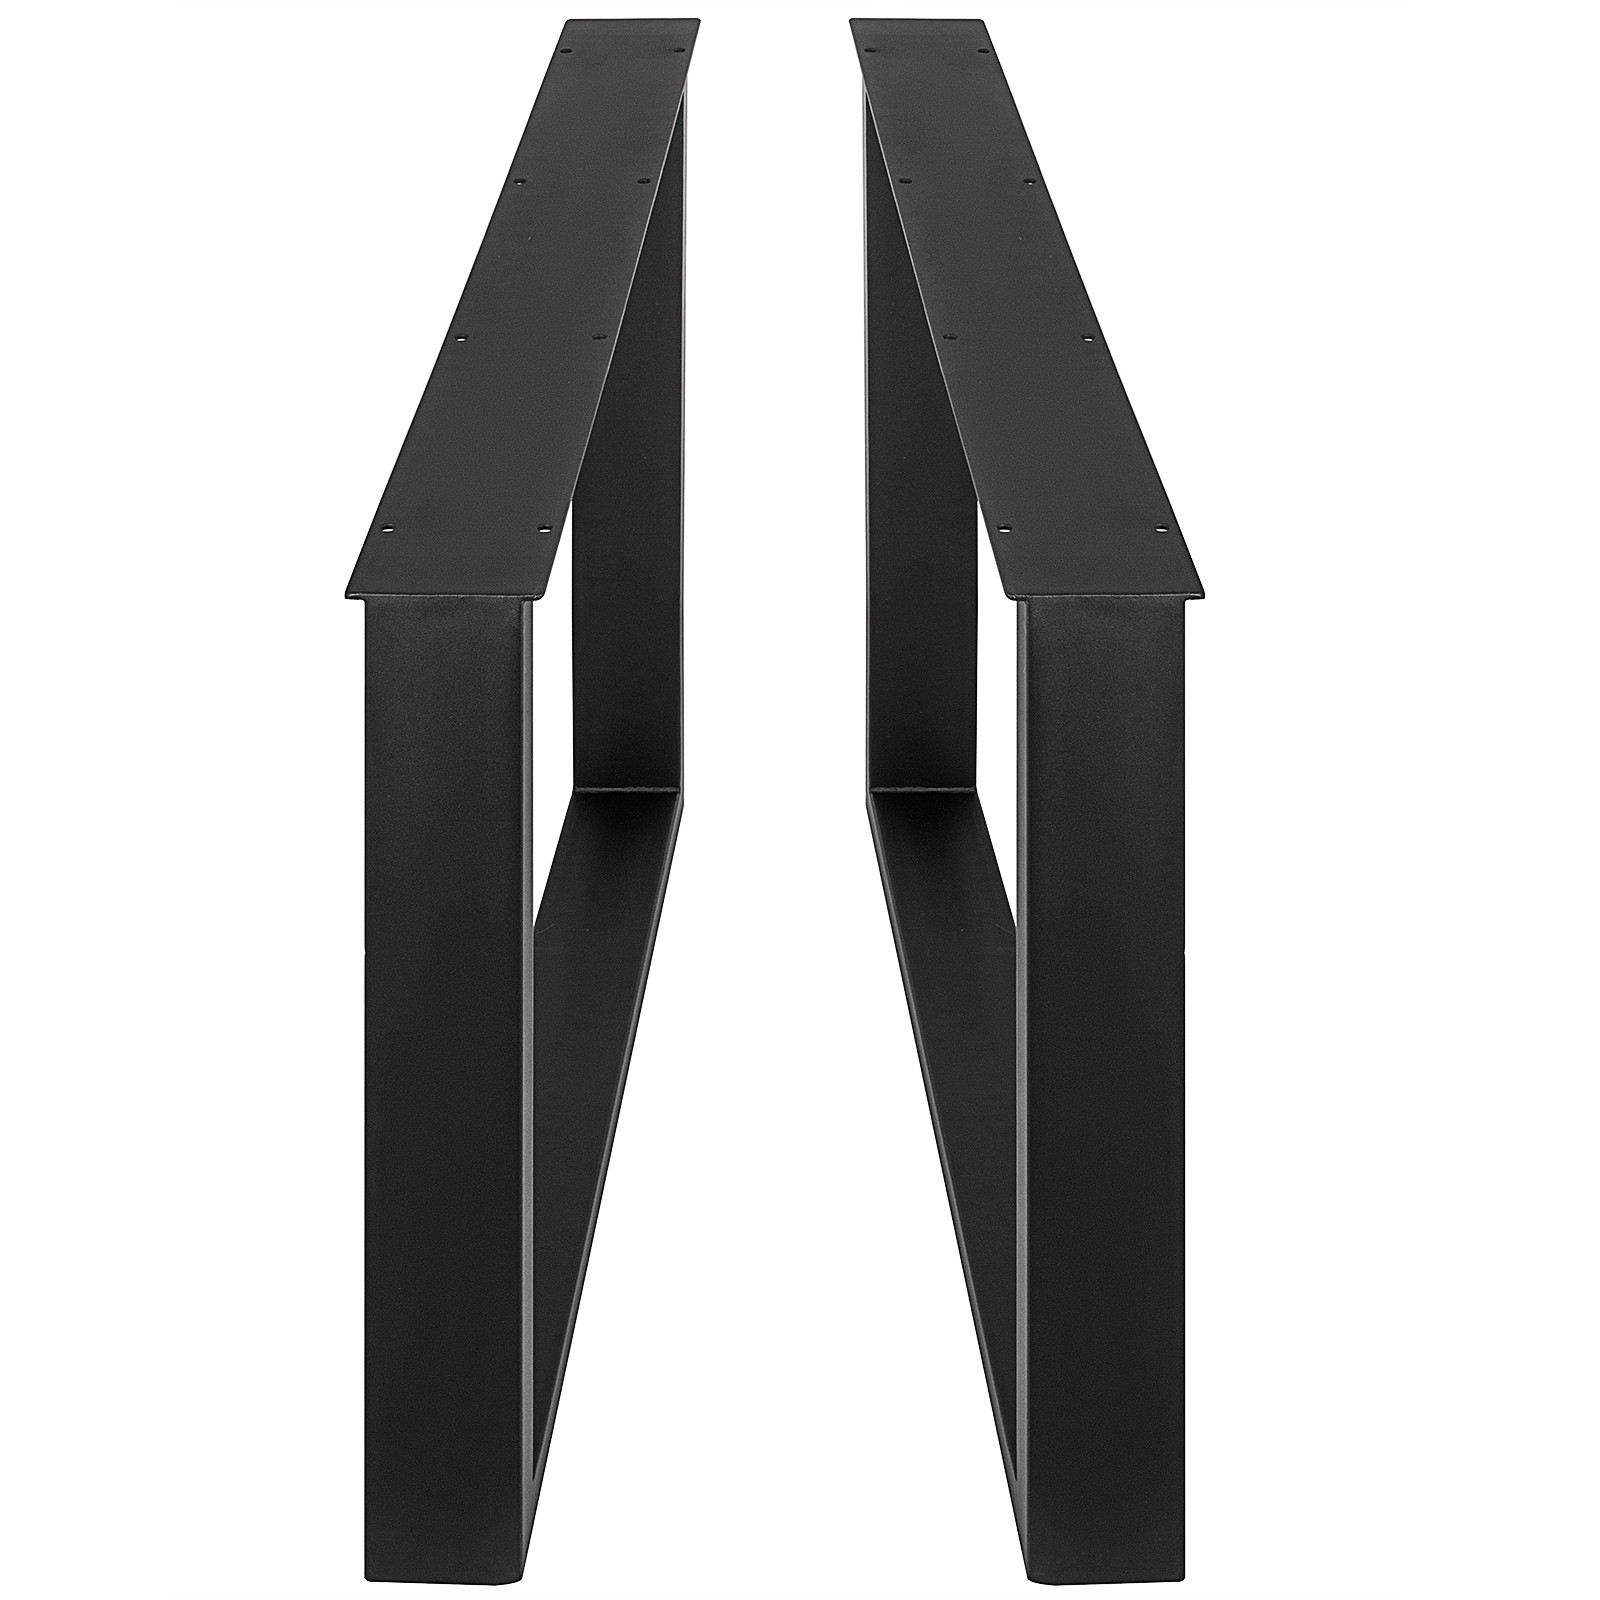 2X-Table-Legs-Black-Dining-Table-Leg-Heavy-Duty-Computer-Desk-Legs-Rectangle thumbnail 29